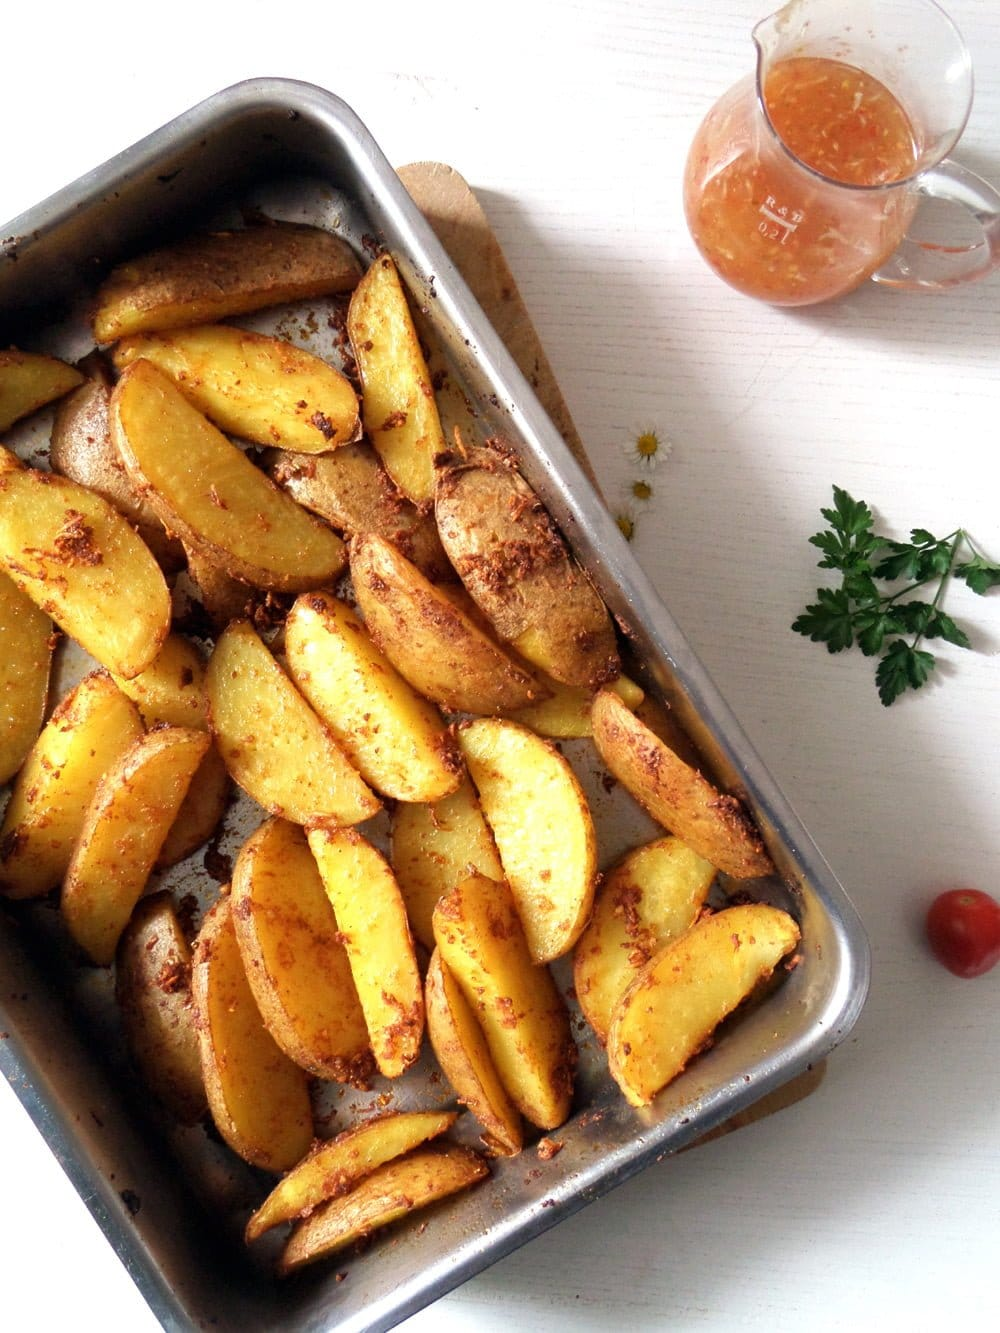 Potato Wedges with Sweet Chili Sauce